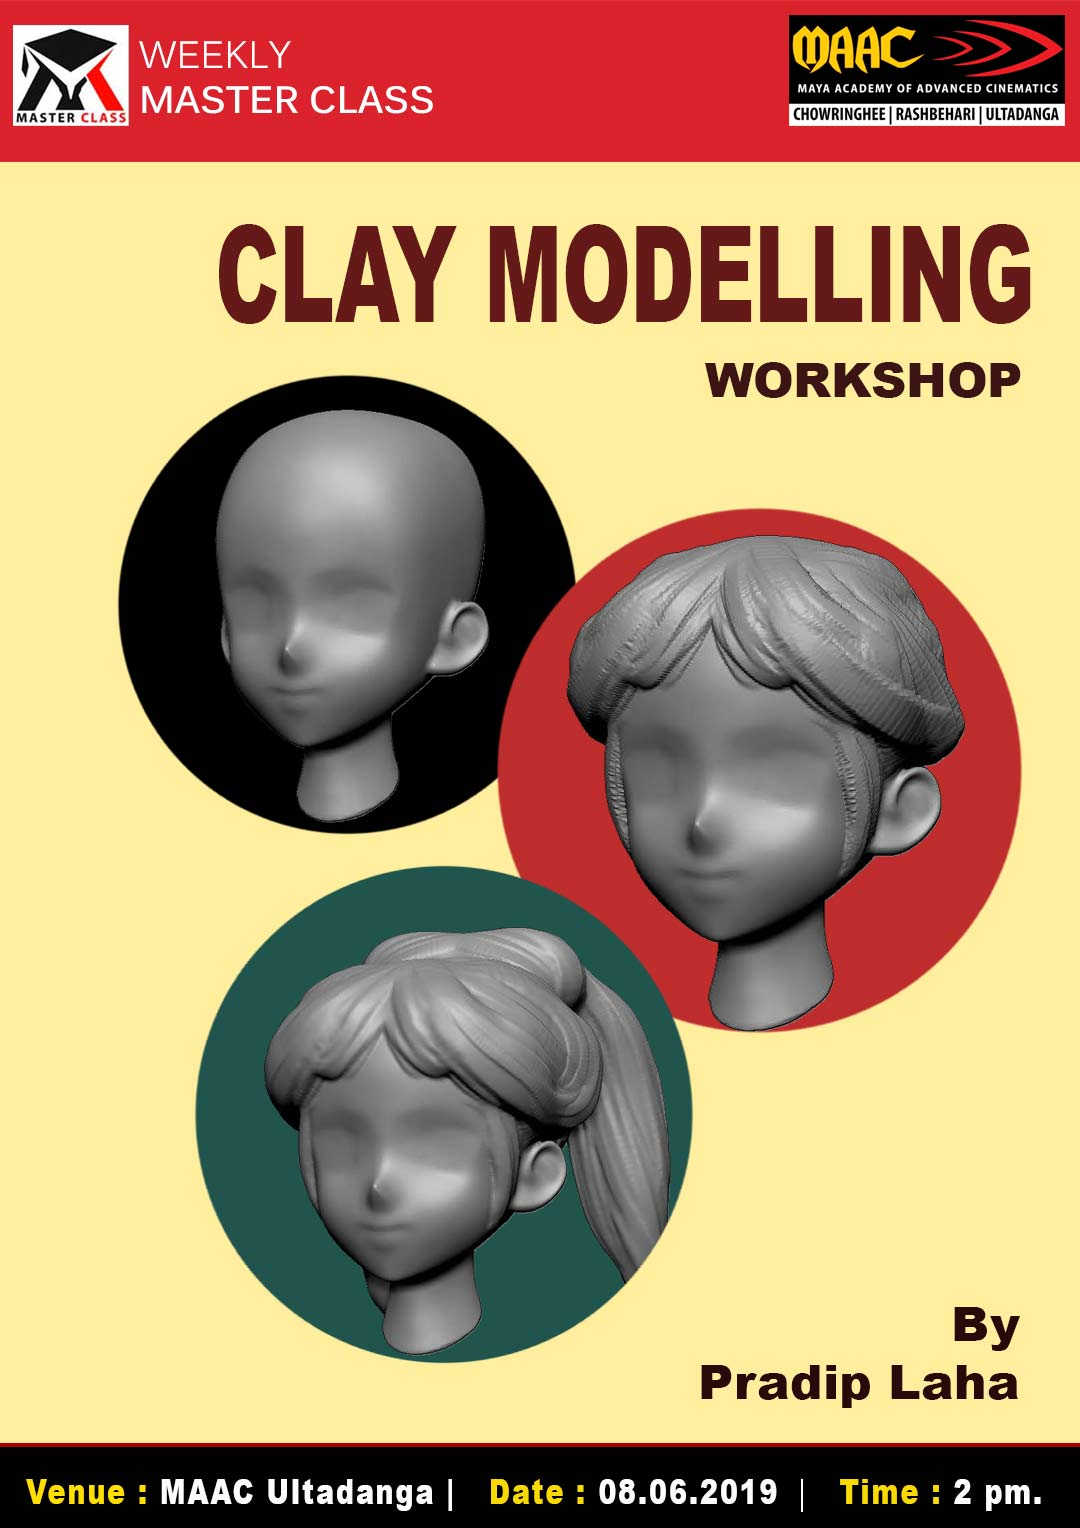 Weekly Master Class on Clay Modeling Workshop